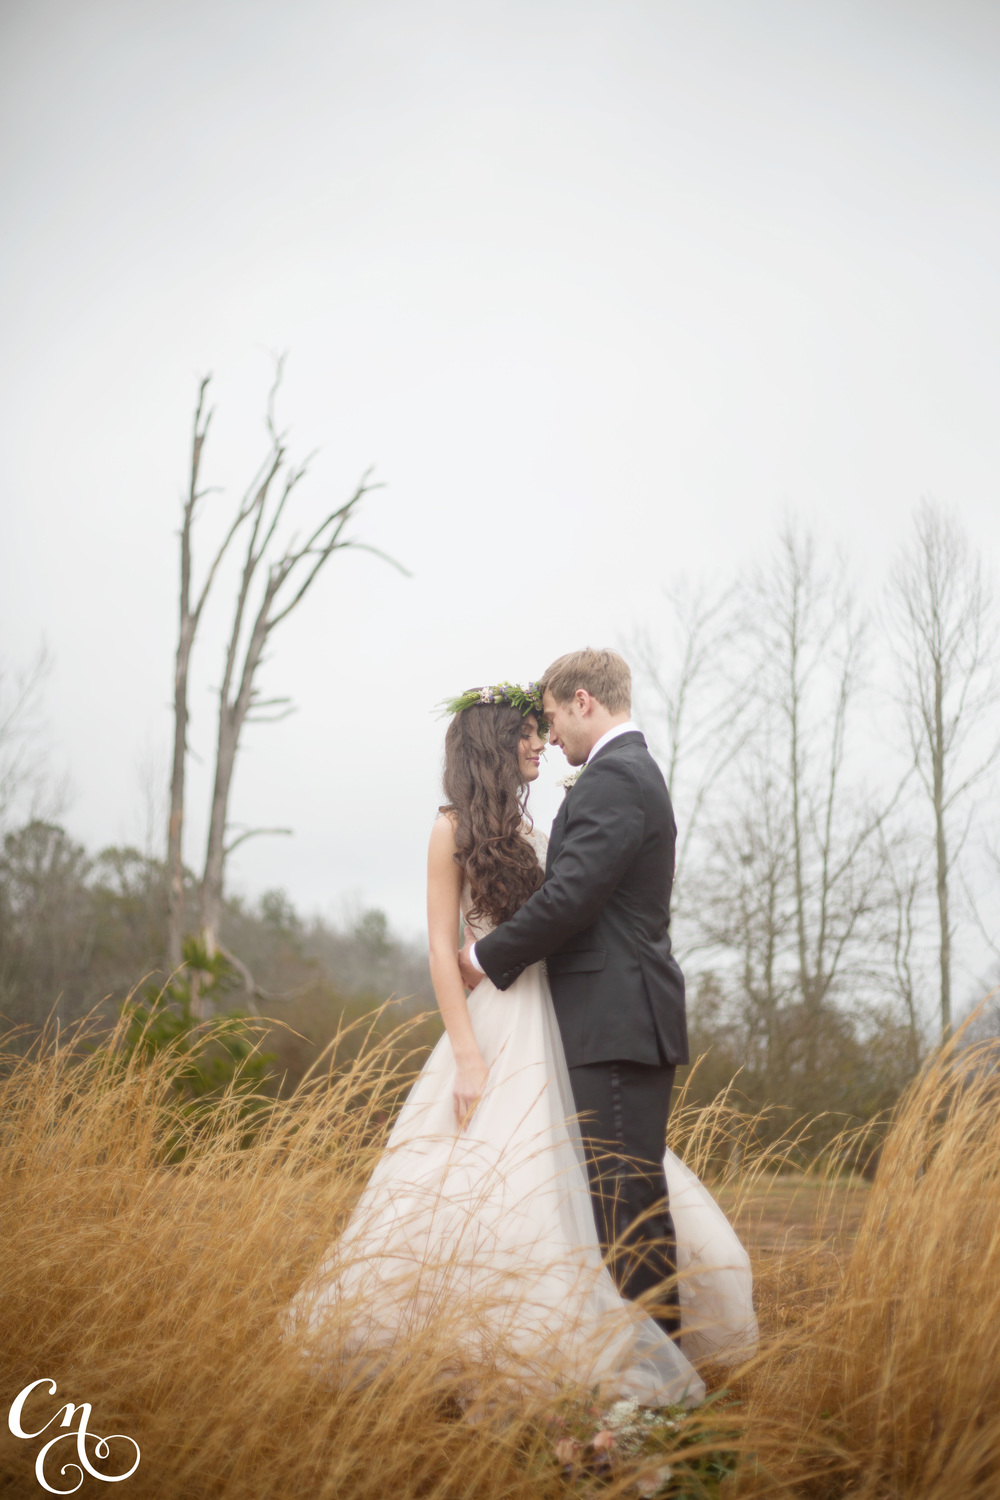 CNP Styled Shoot_5975wm.jpg